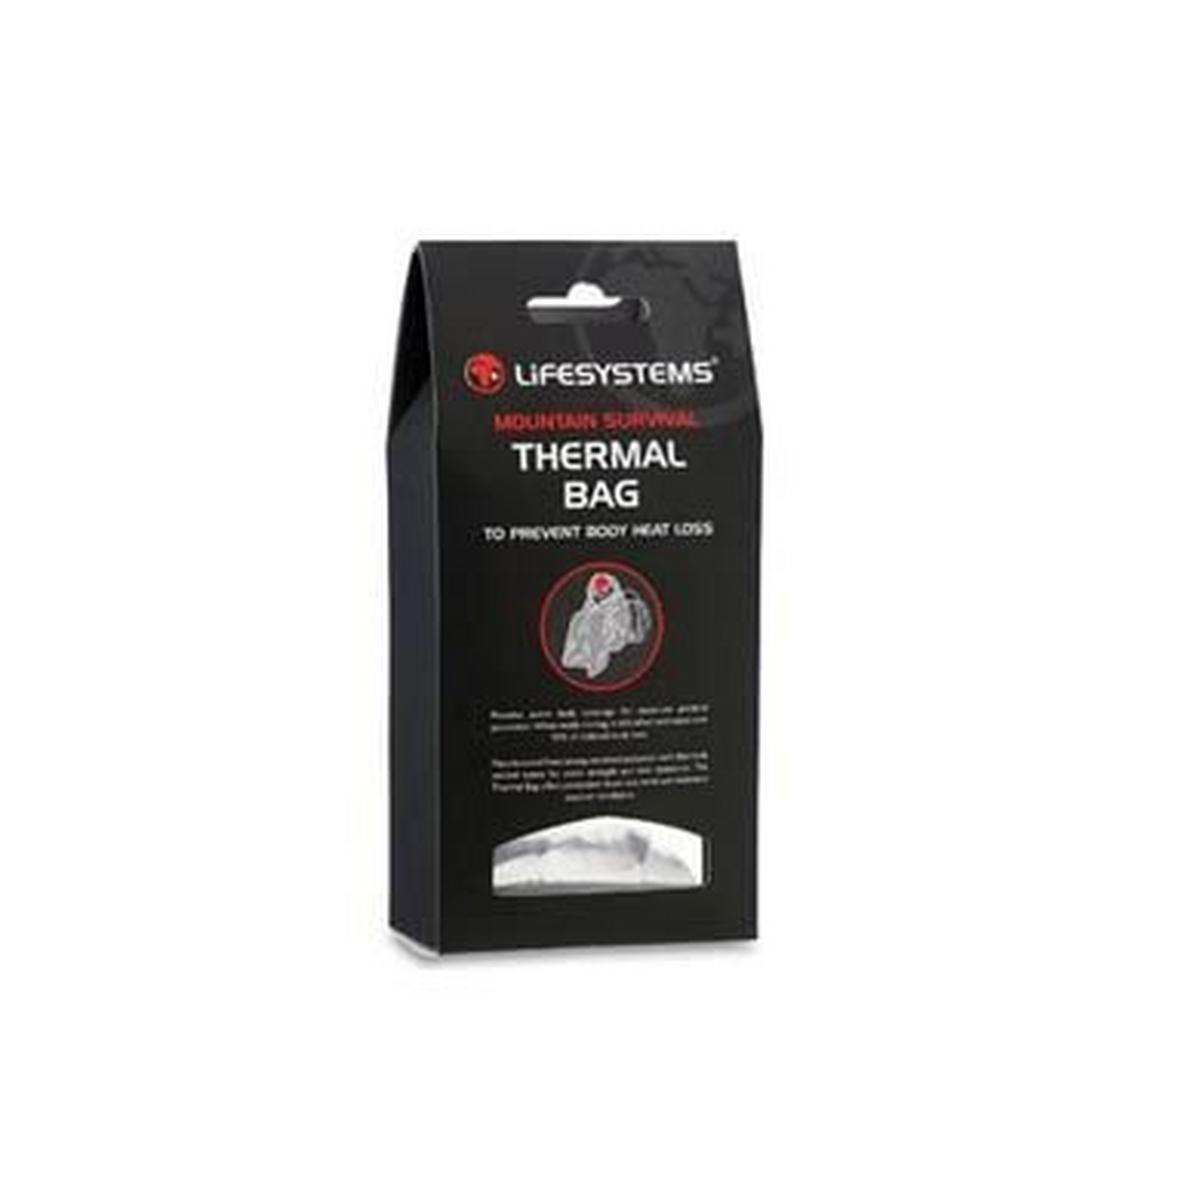 Lifesystems Mountain Survival Thermal Bag